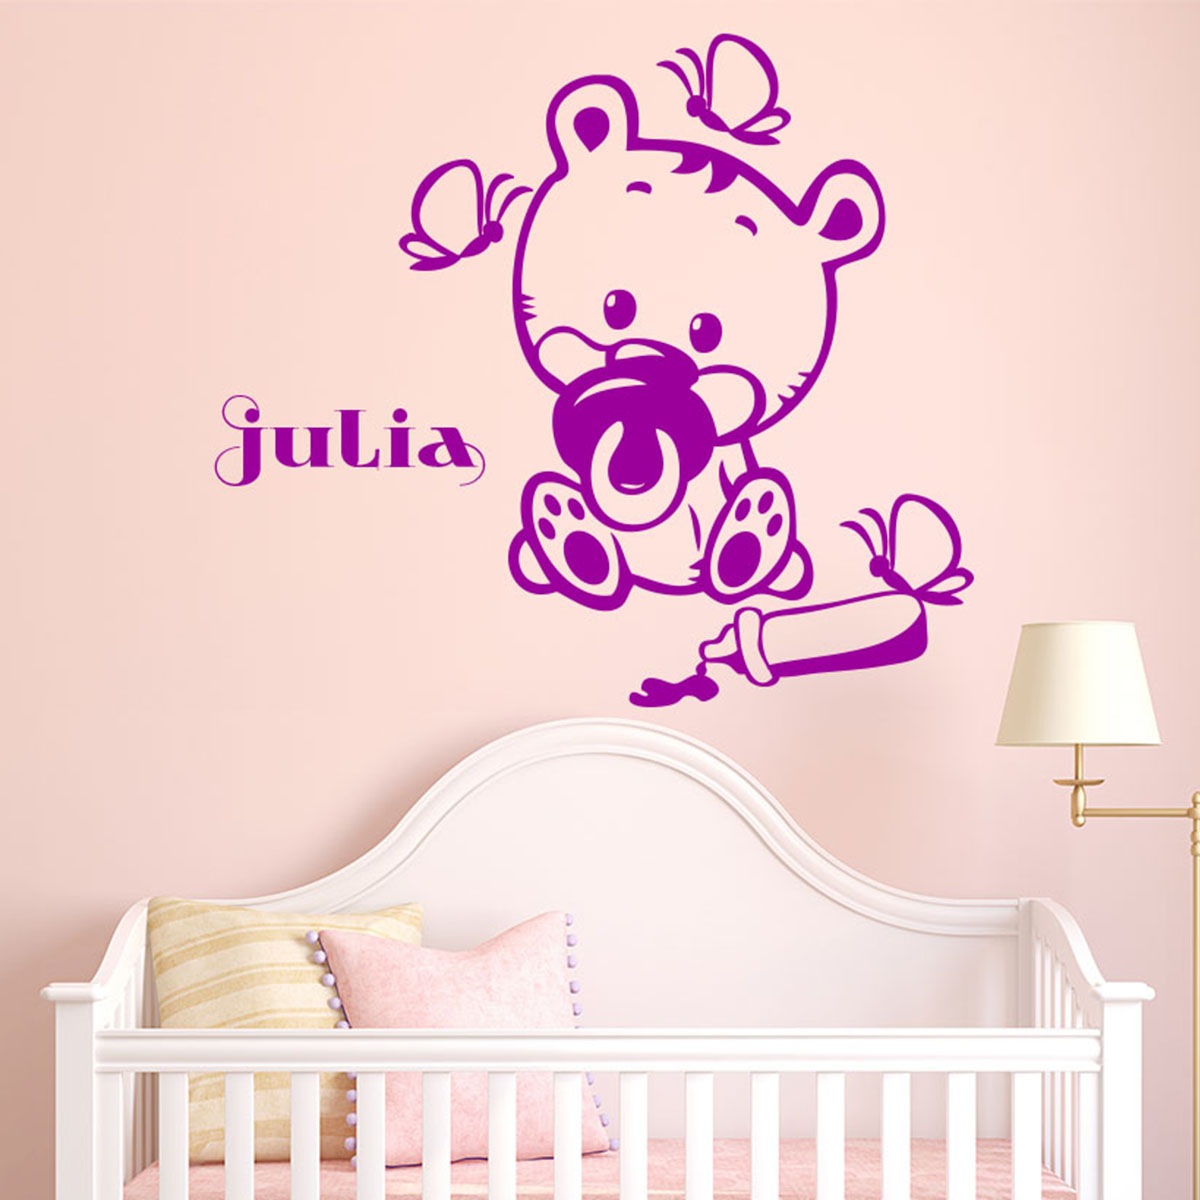 sticker pr nom personnalis b b ourson texte personnalisable pr nom ambiance sticker. Black Bedroom Furniture Sets. Home Design Ideas